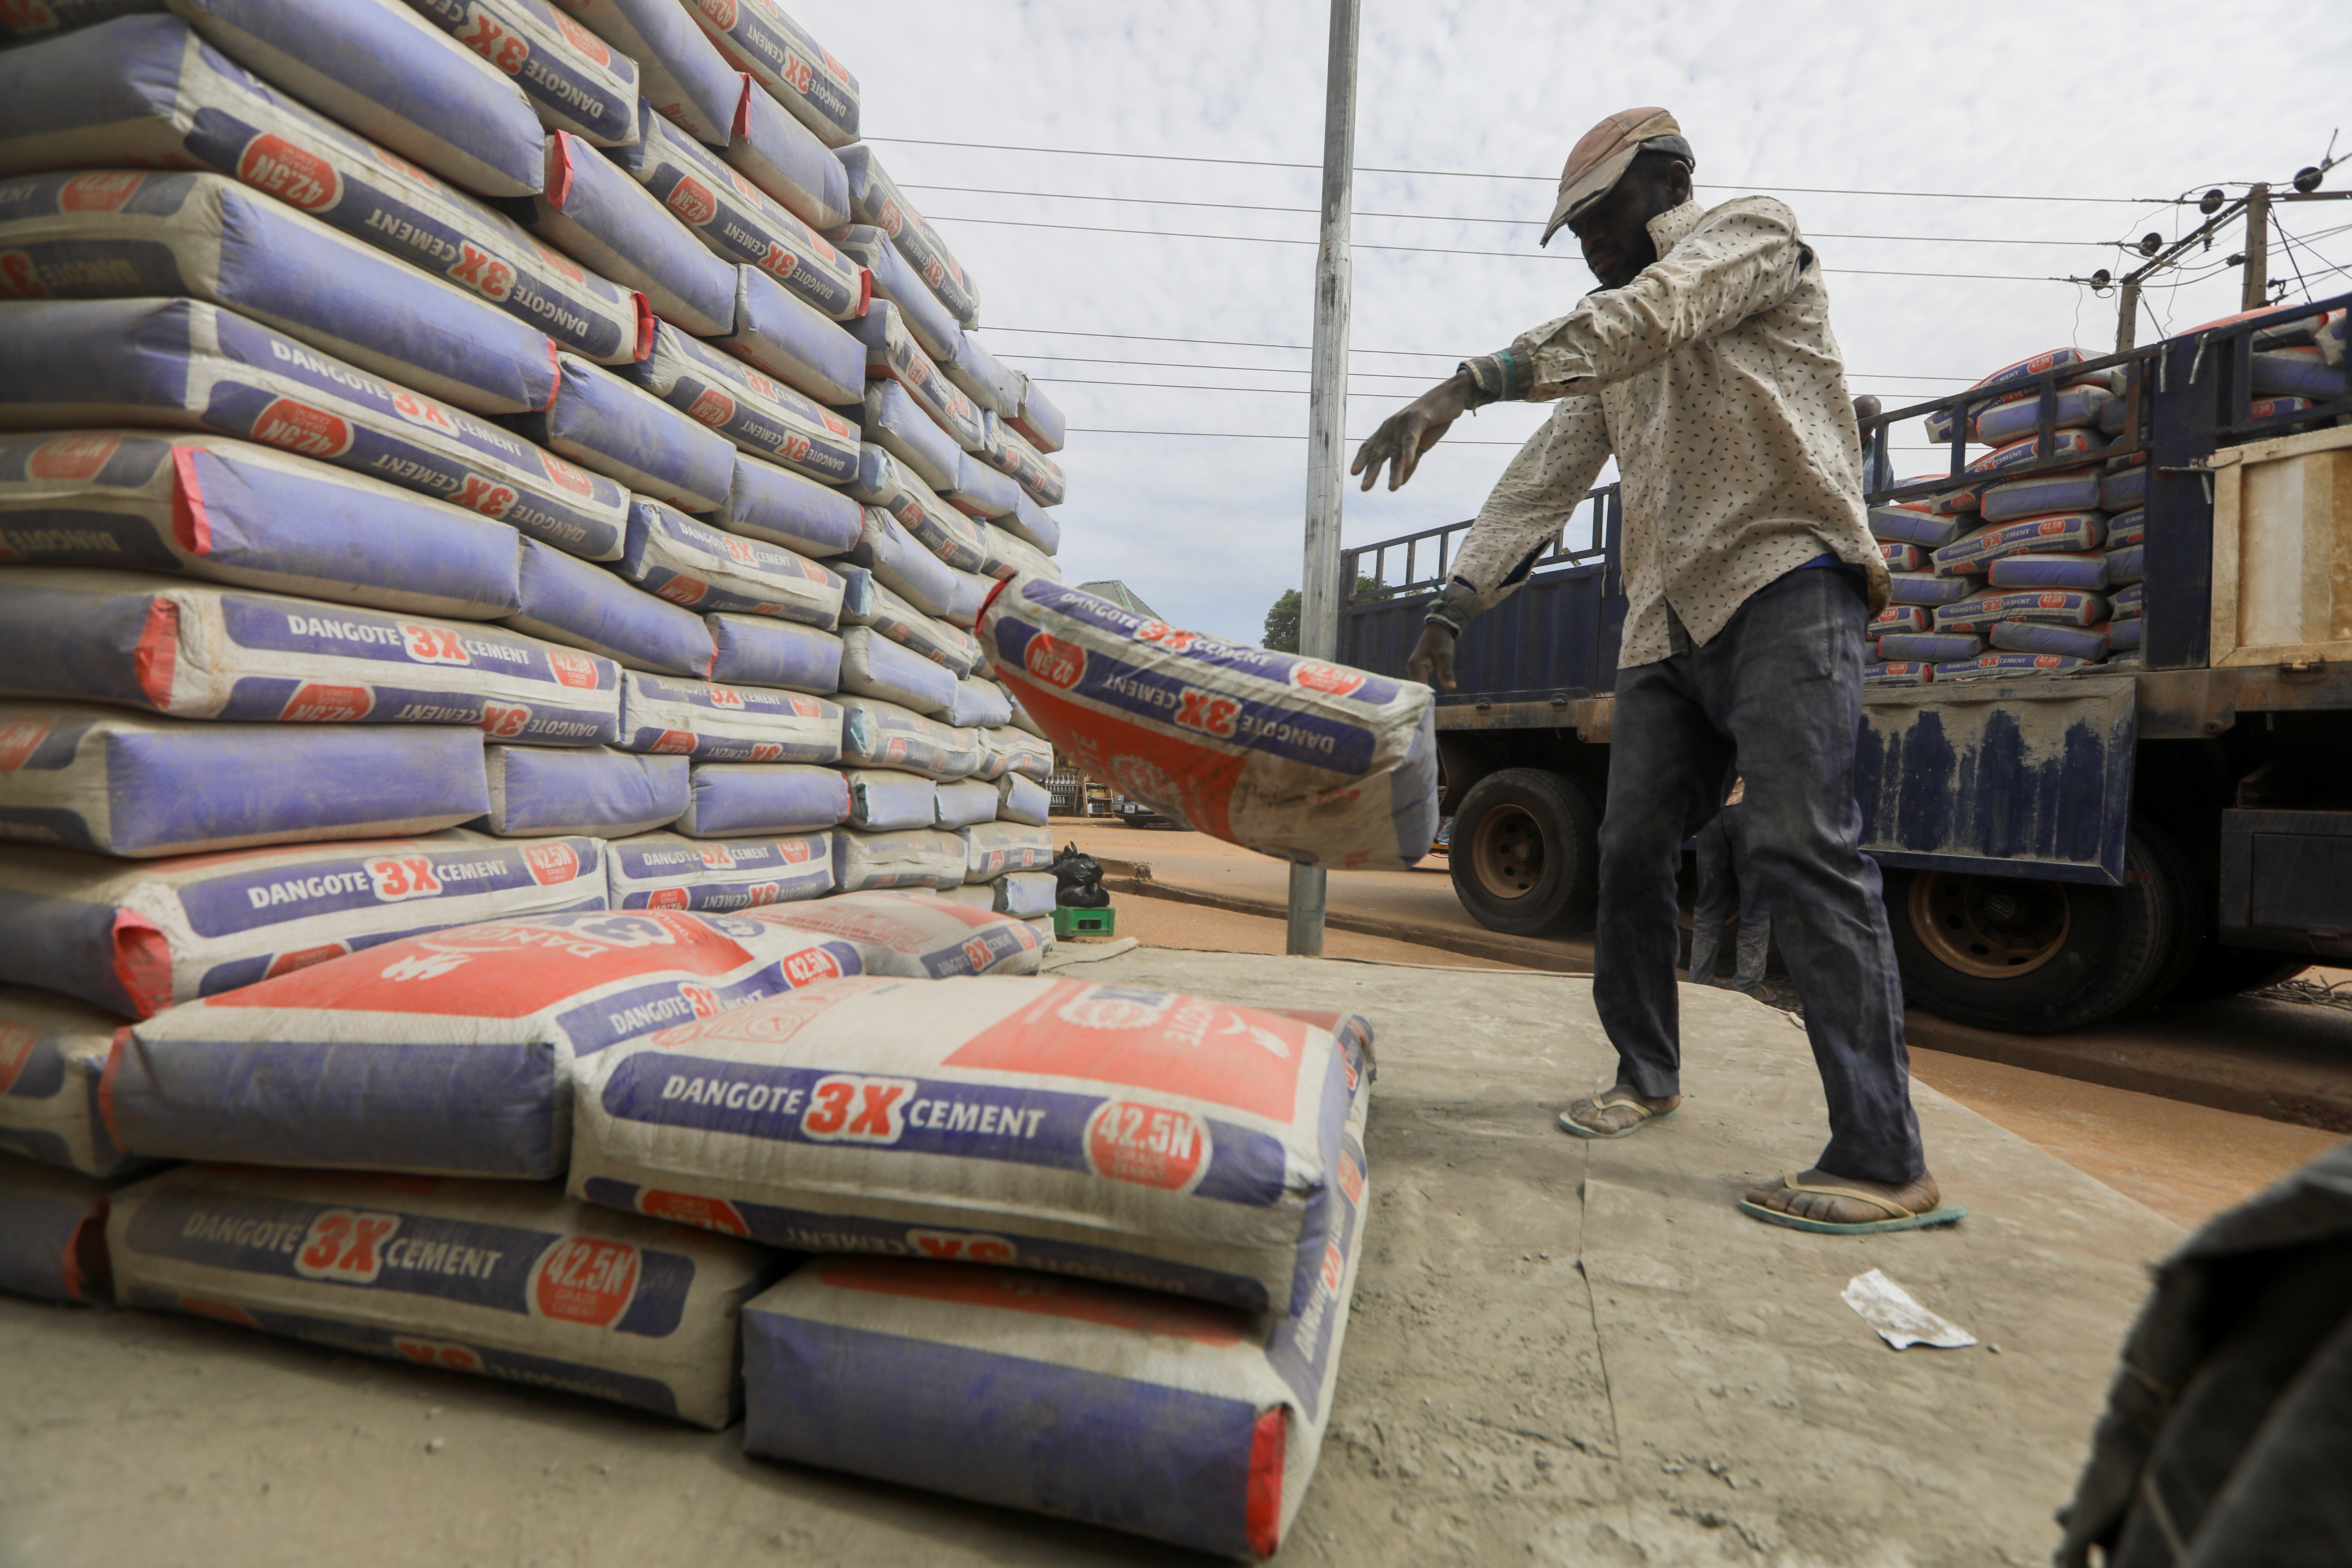 A man drops a bag of Dangote cement while offloading a truck in Abuja, Nigeria May 11, 2021. REUTERS/Afolabi Sotunde